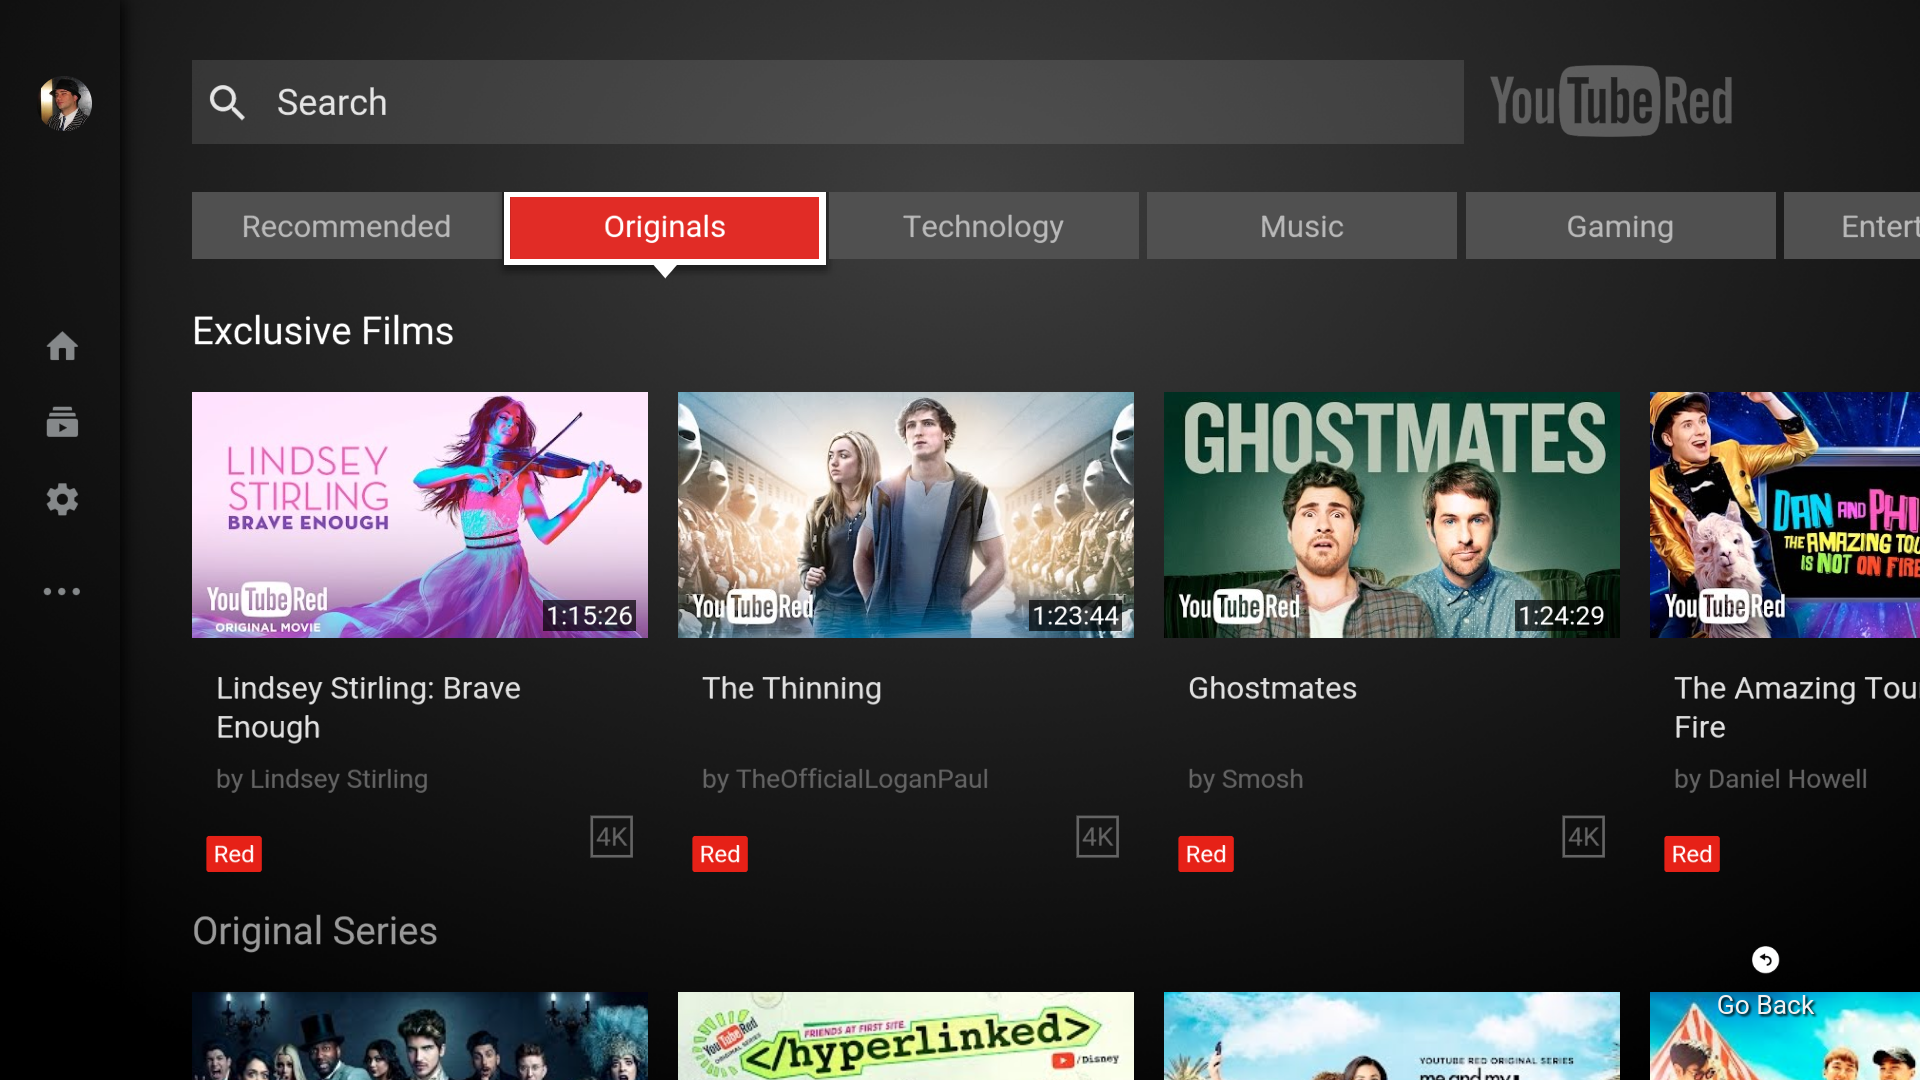 Update: arm APK] YouTube for Android TV v2 0 brings a major redesign